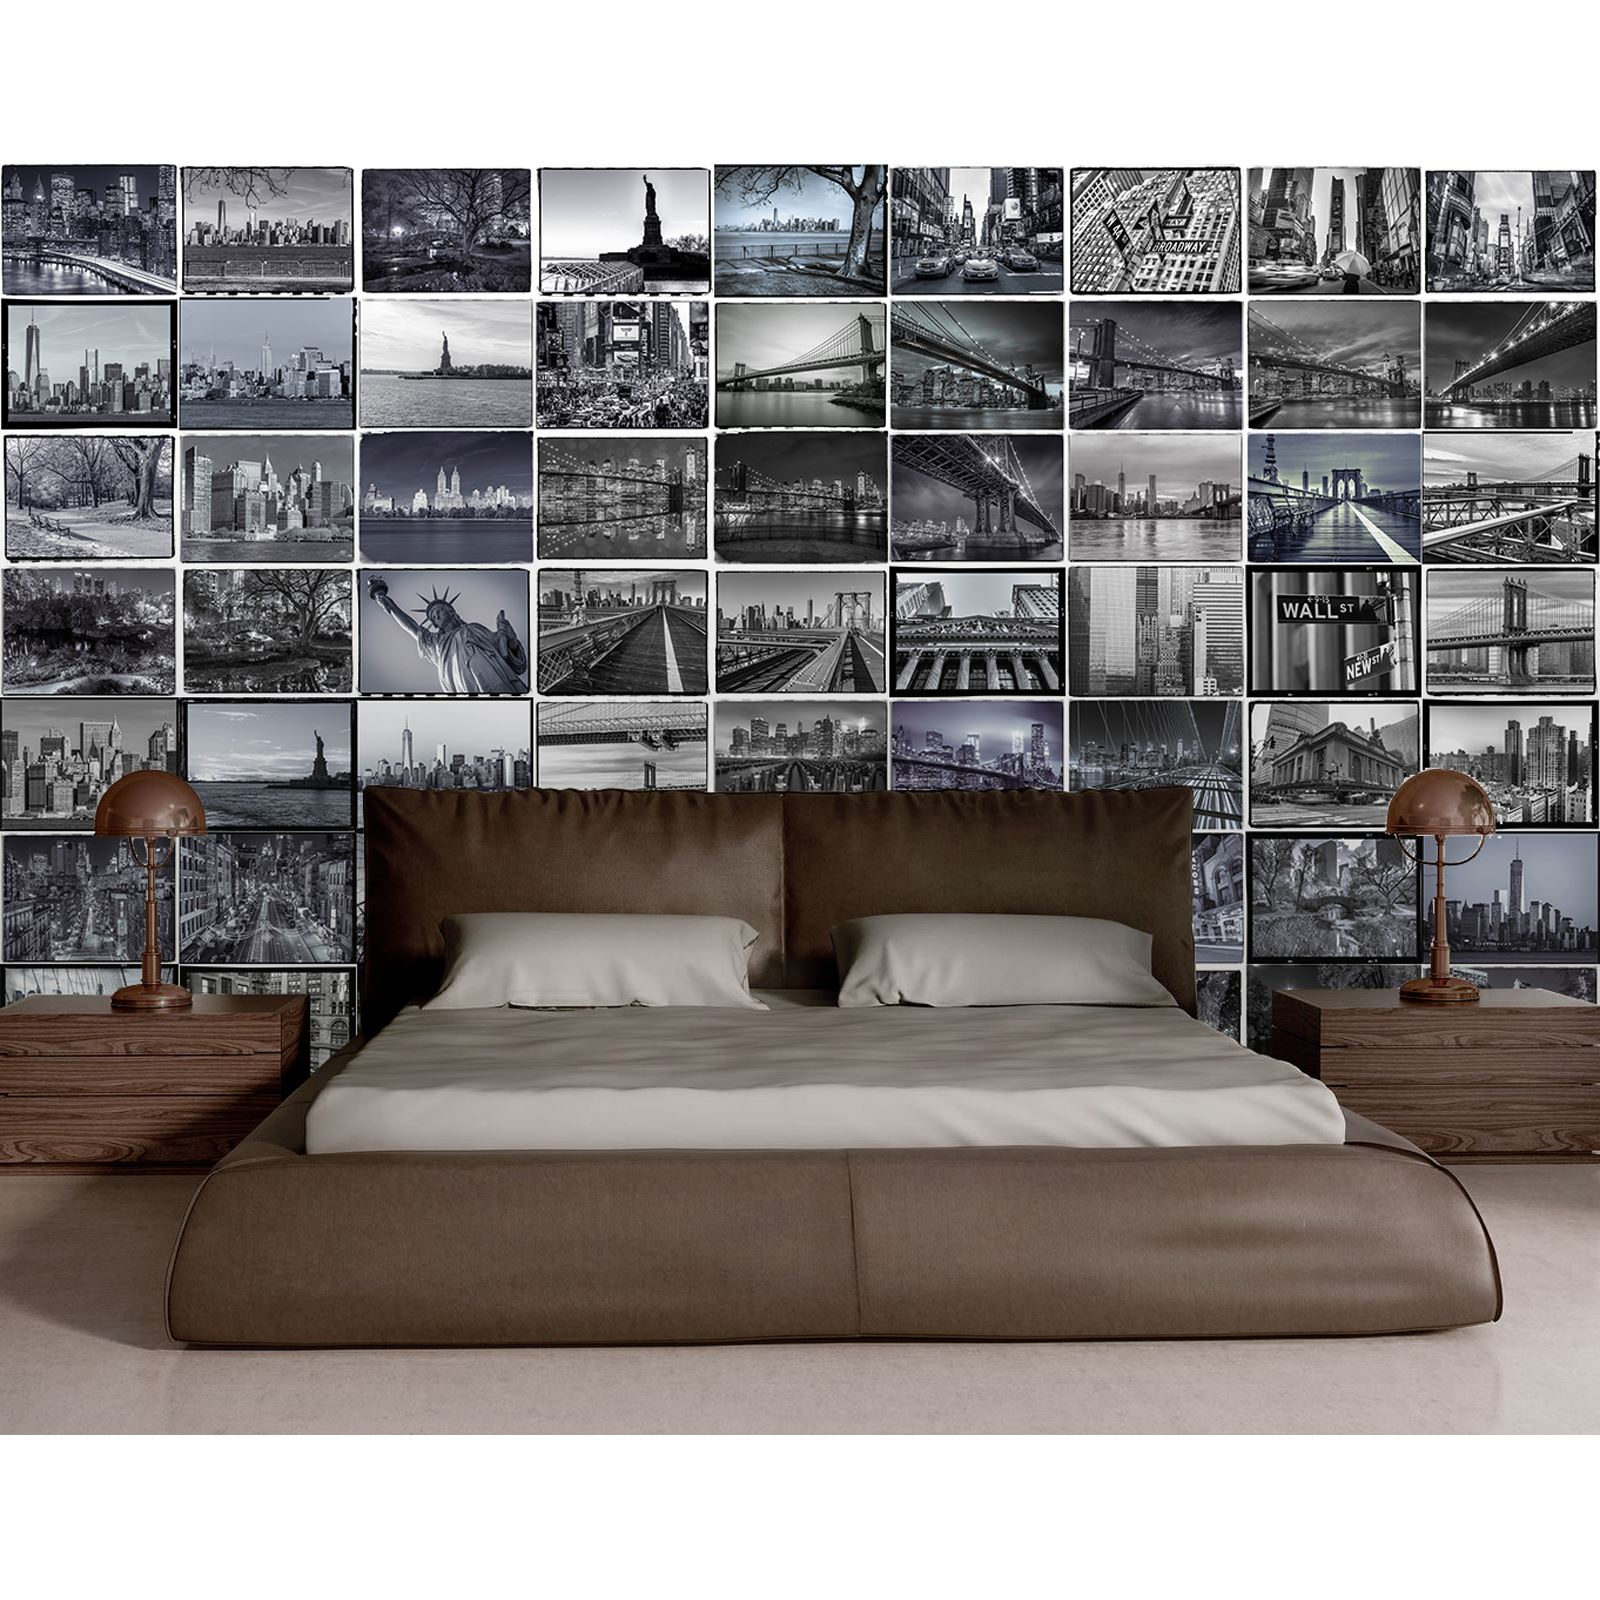 World cities wall murals london paris new york more for Black and white london mural wallpaper